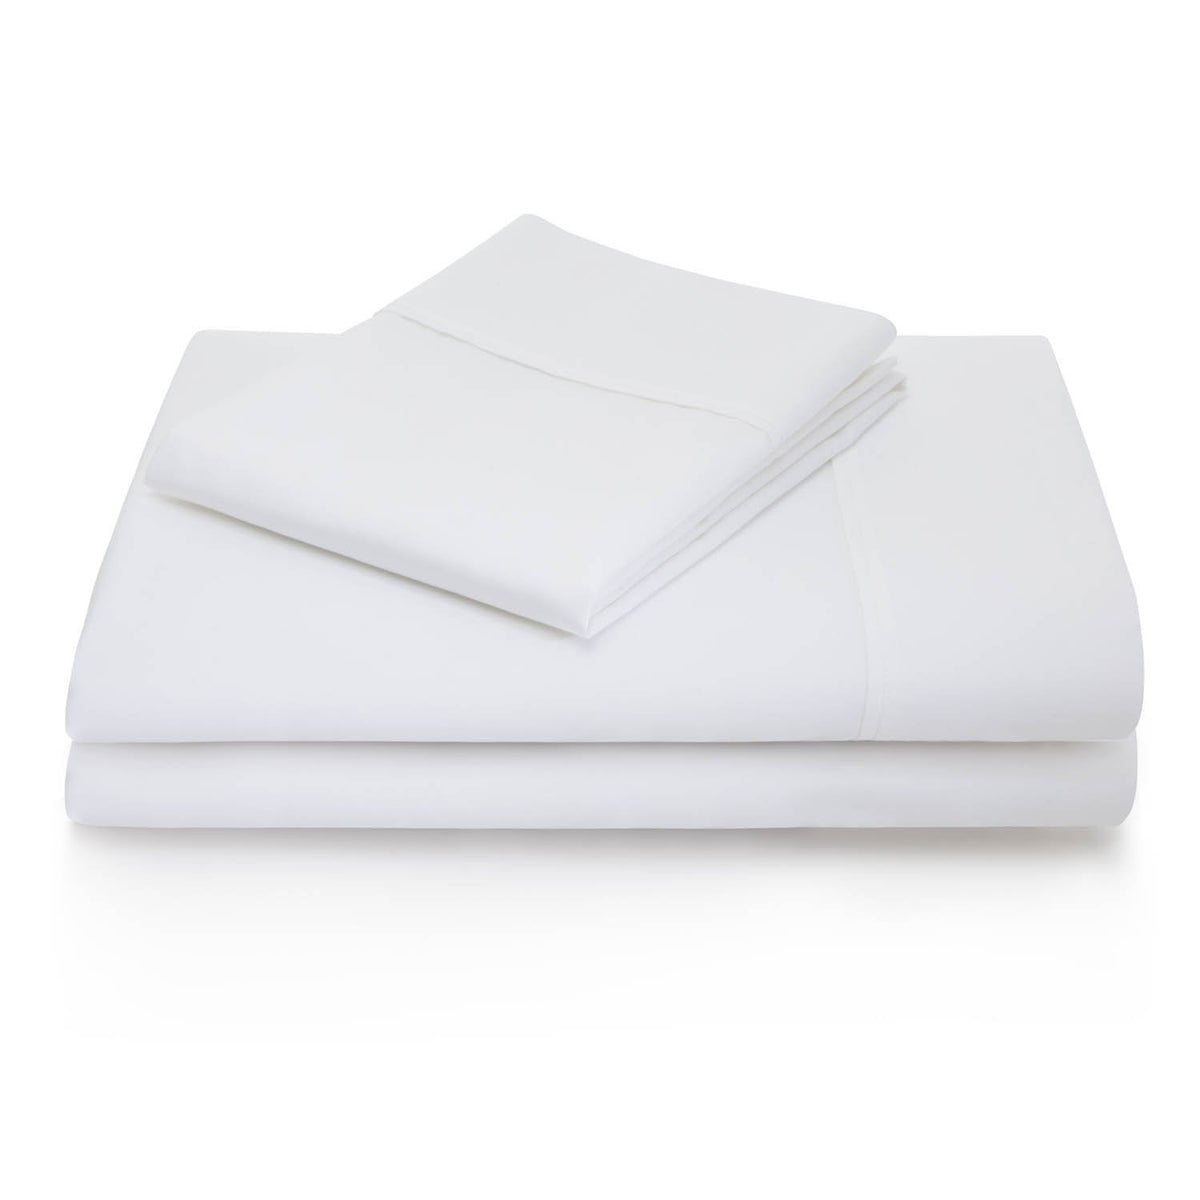 WOVEN 600 Thread Count Cotton Blend Sheet Set Sheet Set Malouf Twin White